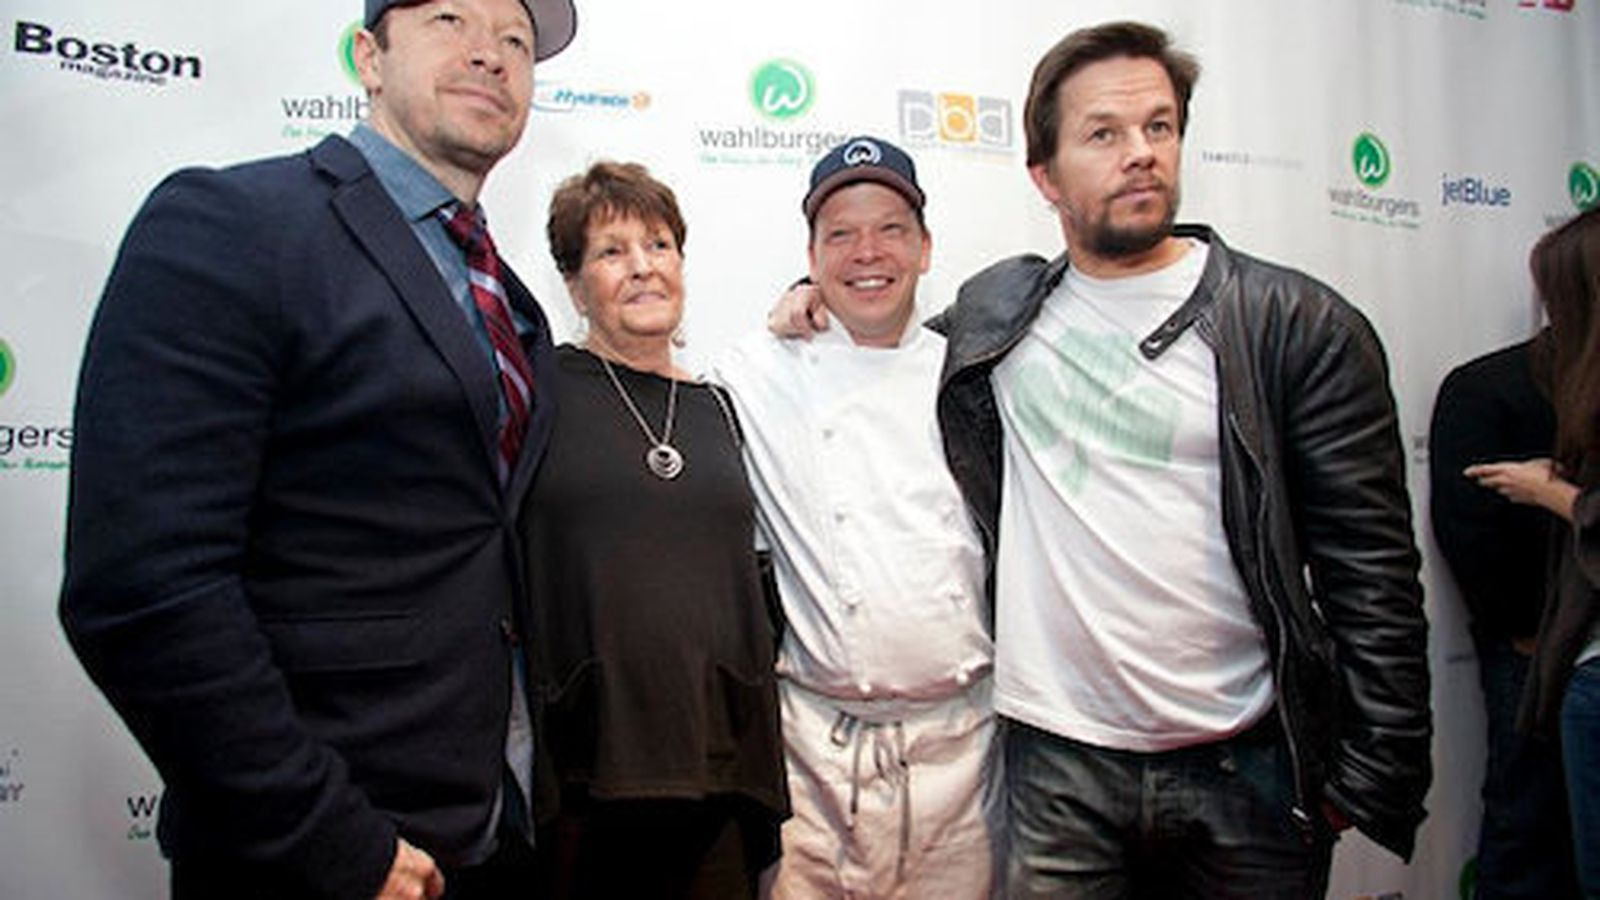 Paul Wahlberg Family Wahlburgers burger chain